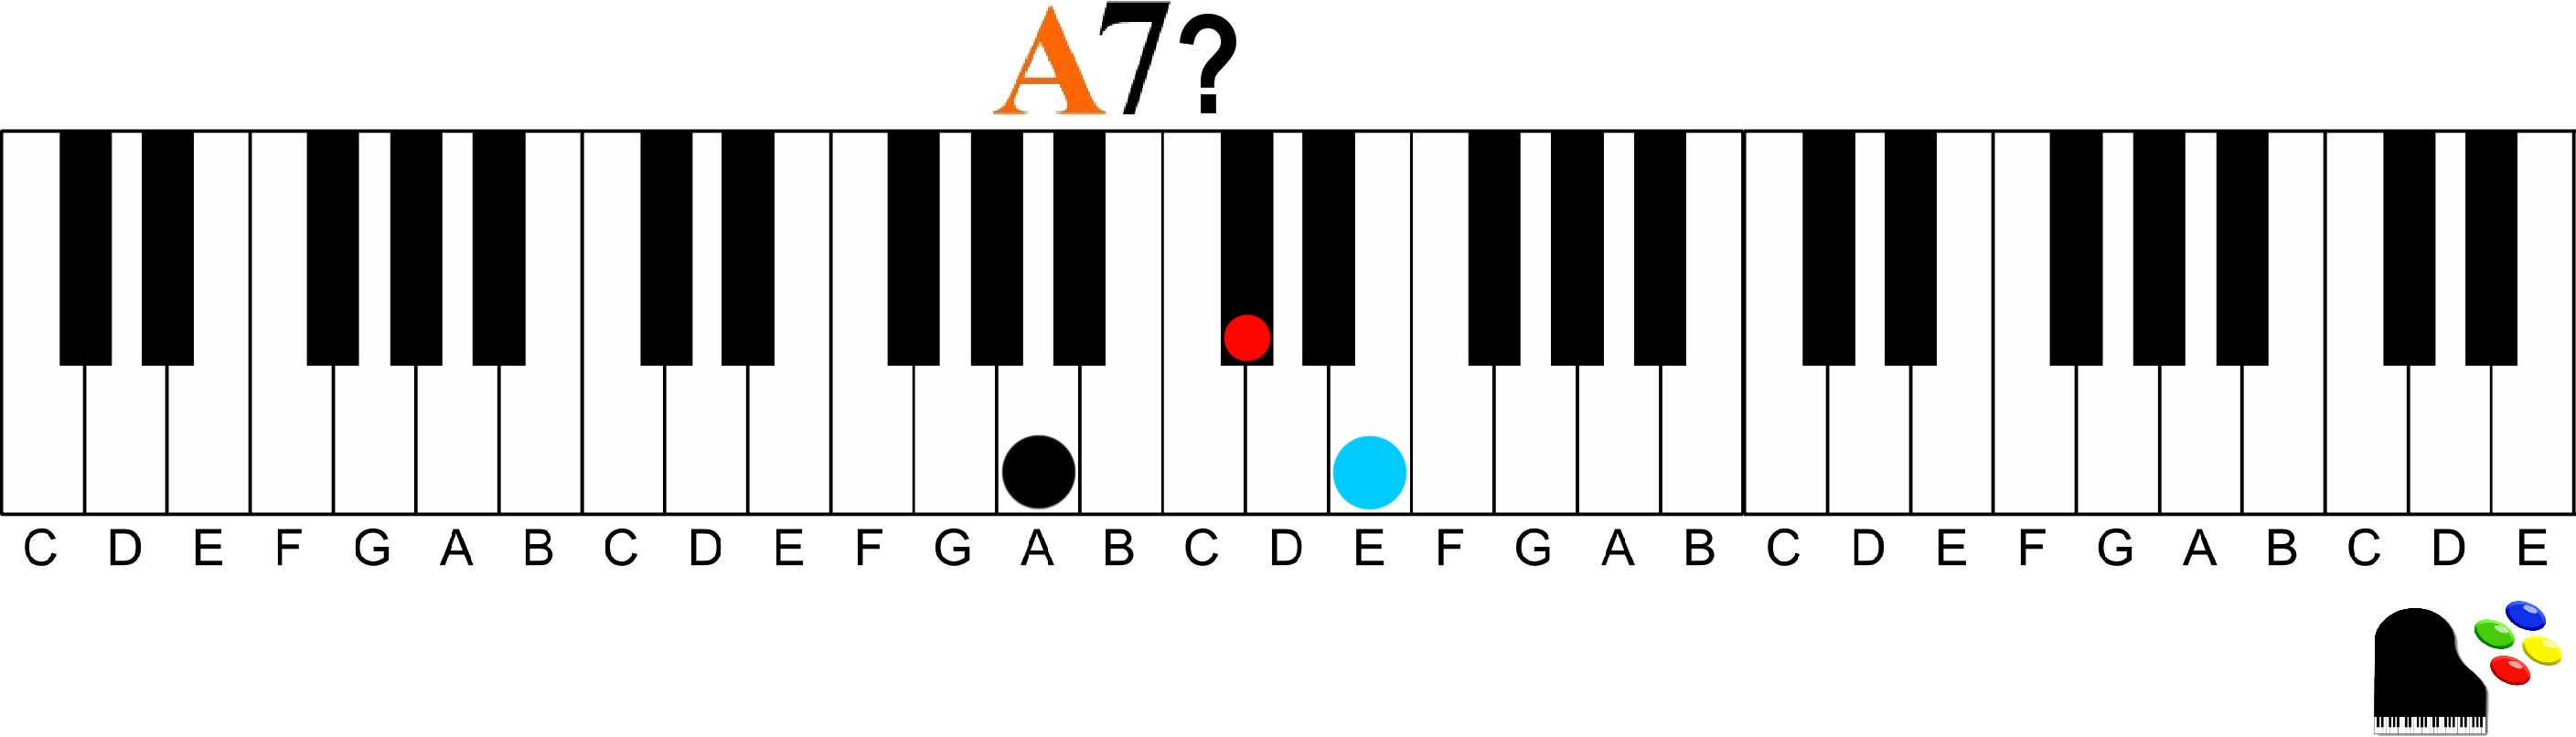 G Chord Piano Play 9th Chords On The Piano How To Understand And Play Them